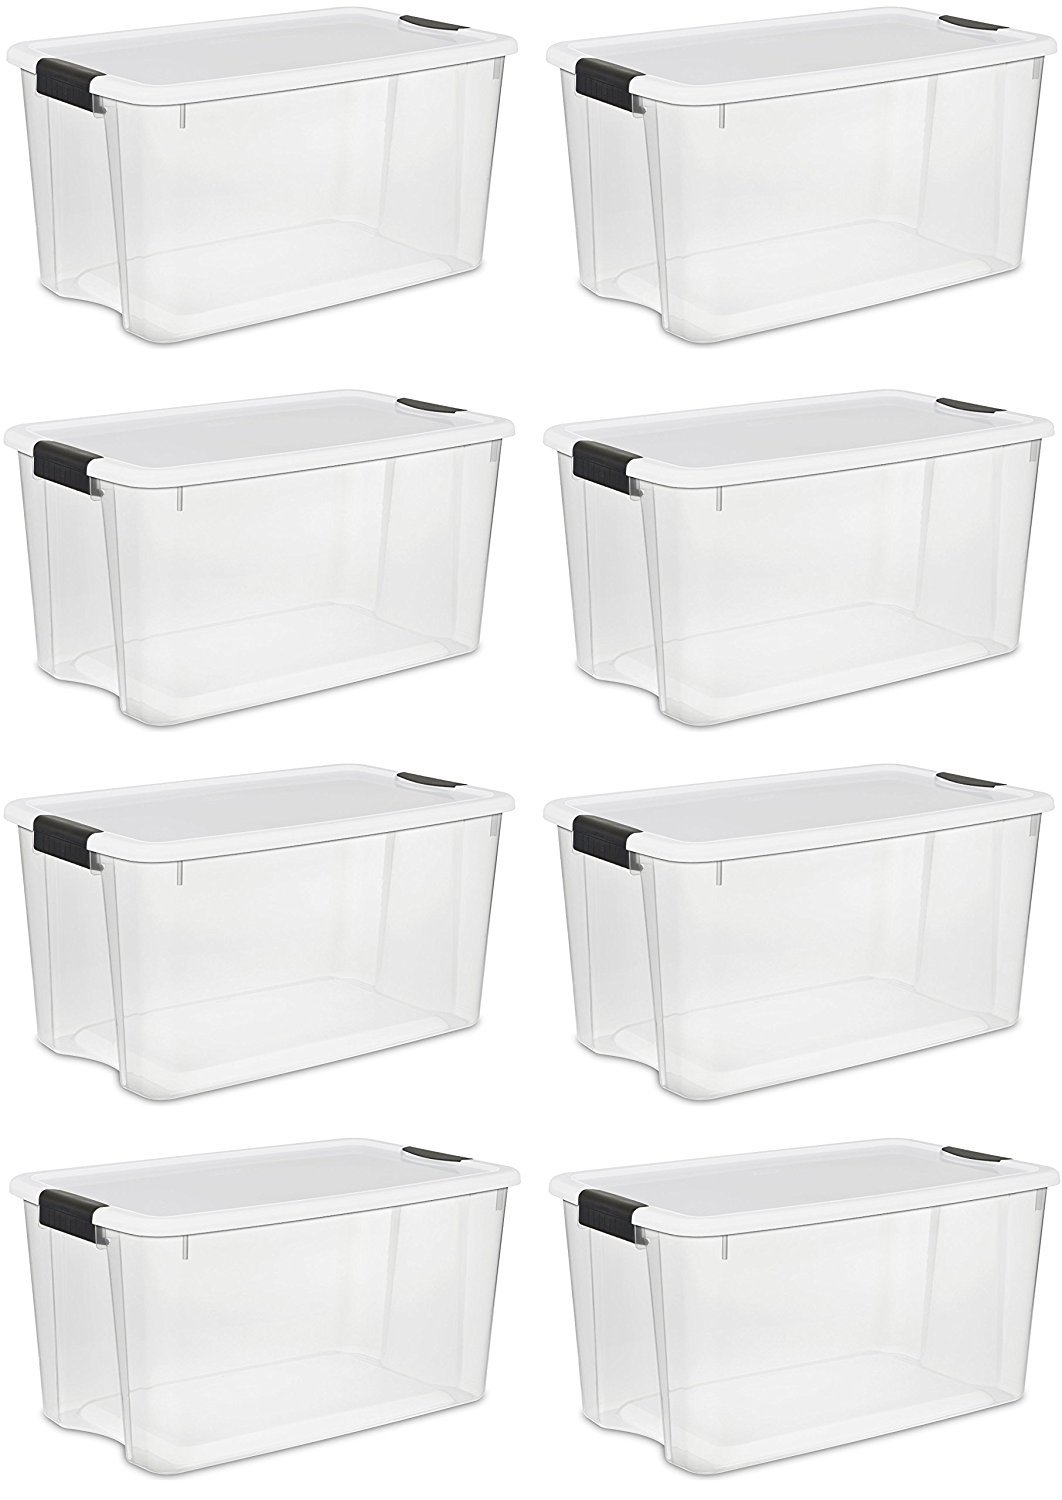 Sterilite 70 Quart/66 Liter Ultra Latch Box, Clear with a White Lid and Black Latches, 8-Boxes by Sterilite ''